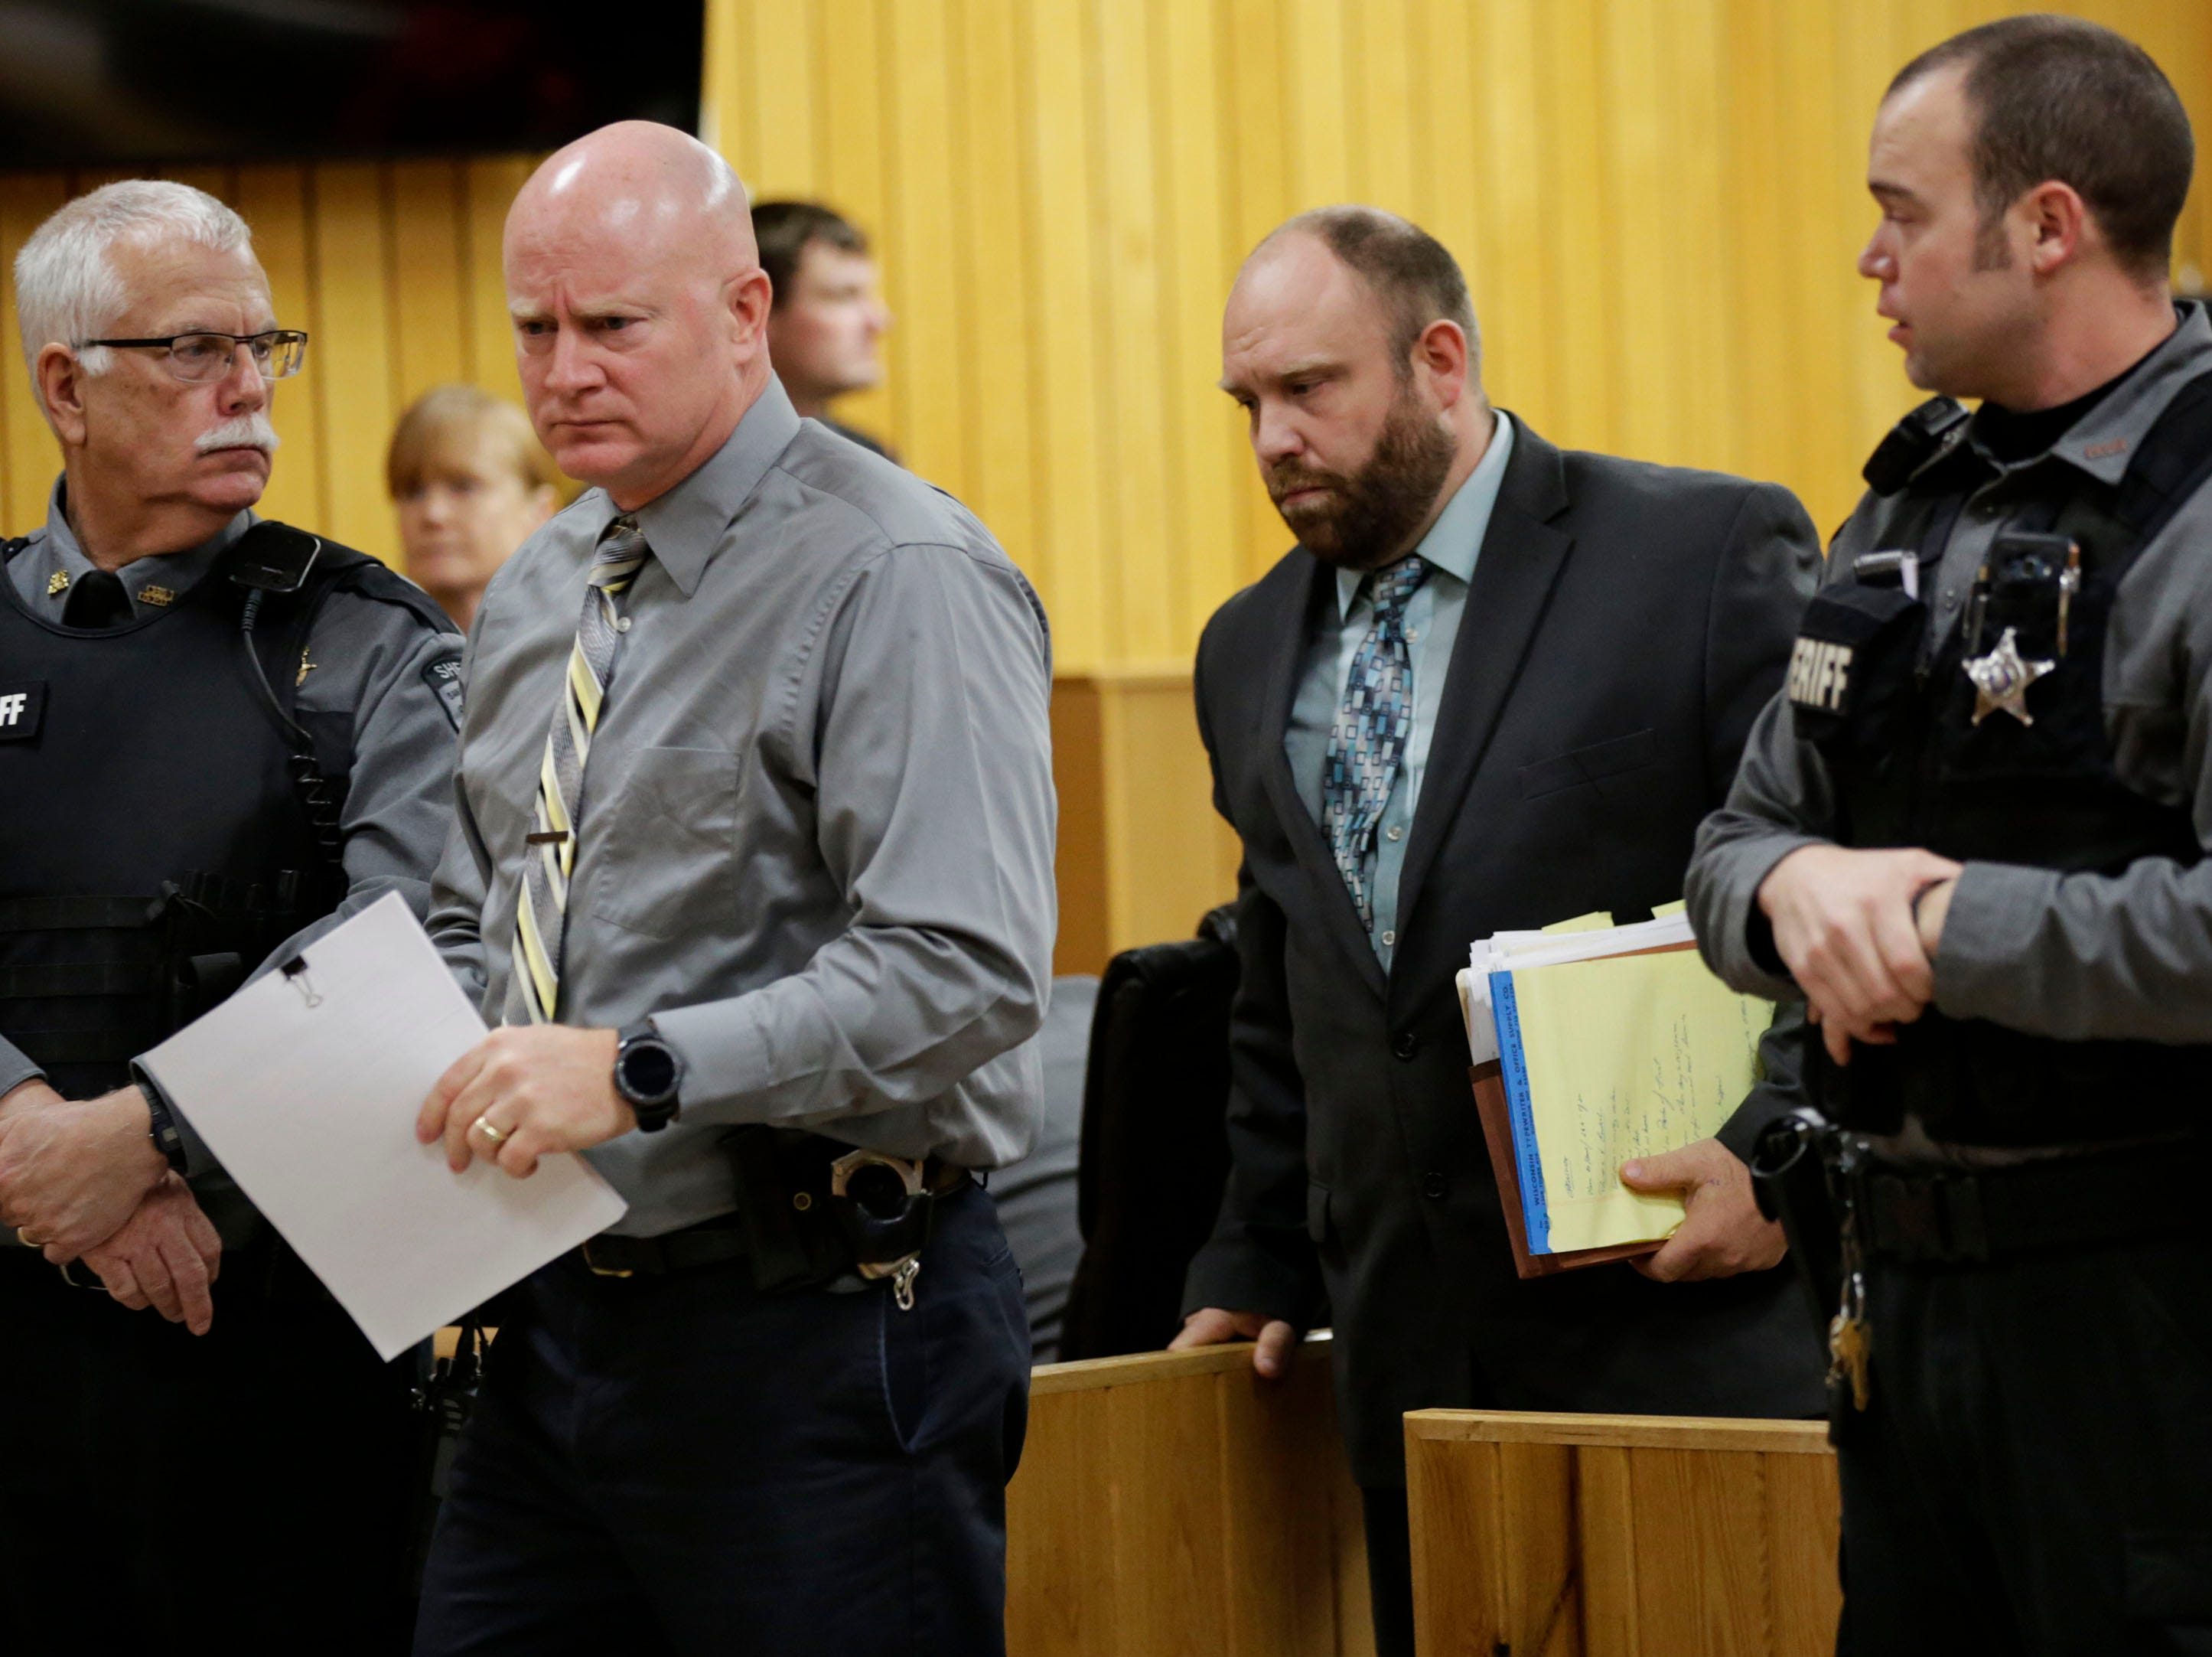 Sawyer County Sheriff's Detective Brian Deyo and Sawyer County Assistant District Attorney Aaron Marcoux leave the courtroom after a preliminary hearing in the case of former Catholic priest Thomas Ericksen on Wednesday, December 12, 2018, at the Sawyer County courthouse in Hayward, Wis.Tork Mason/USA Today NETWORK-Wisconsin